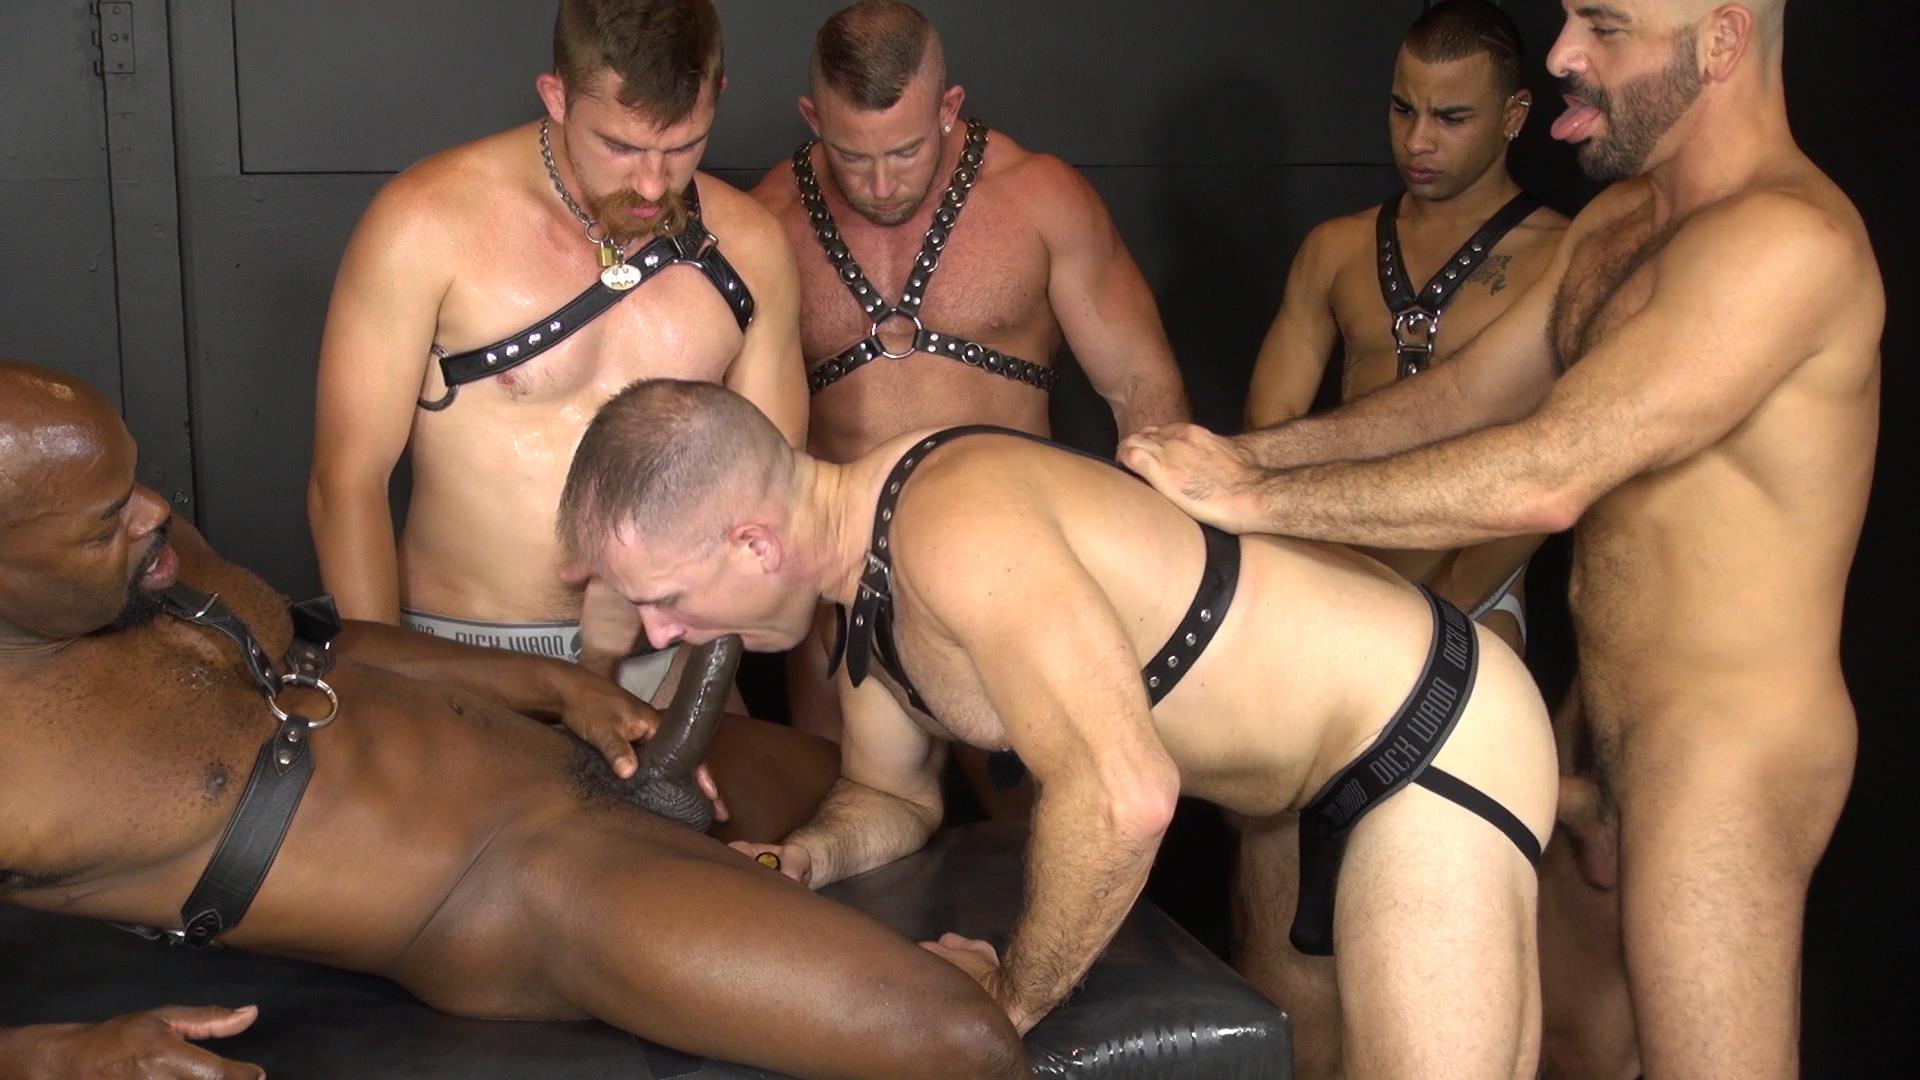 video hairy bareback porn gay group